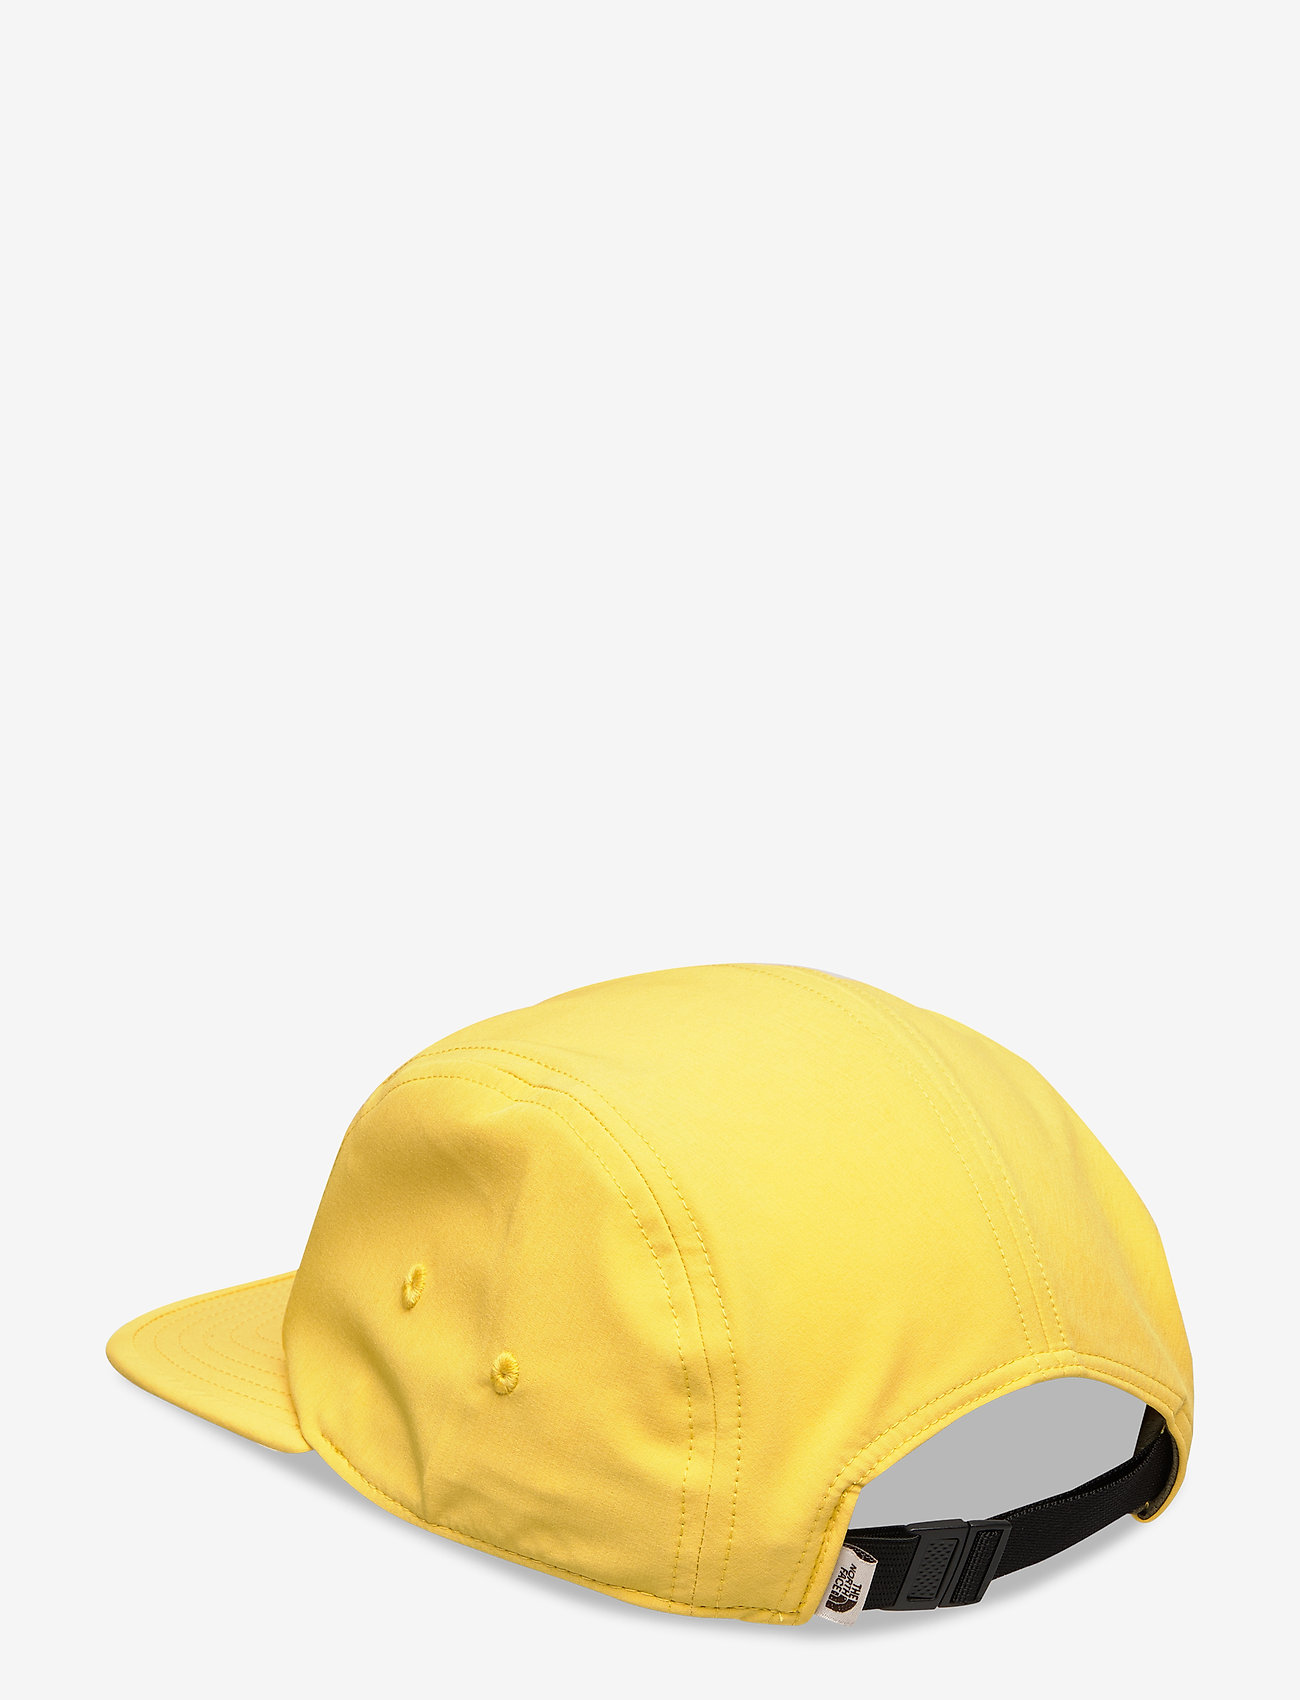 The North Face VAN LIFE CAMP HAT - Czapki i kapelusze BAMBOO YELLOW - Akcesoria